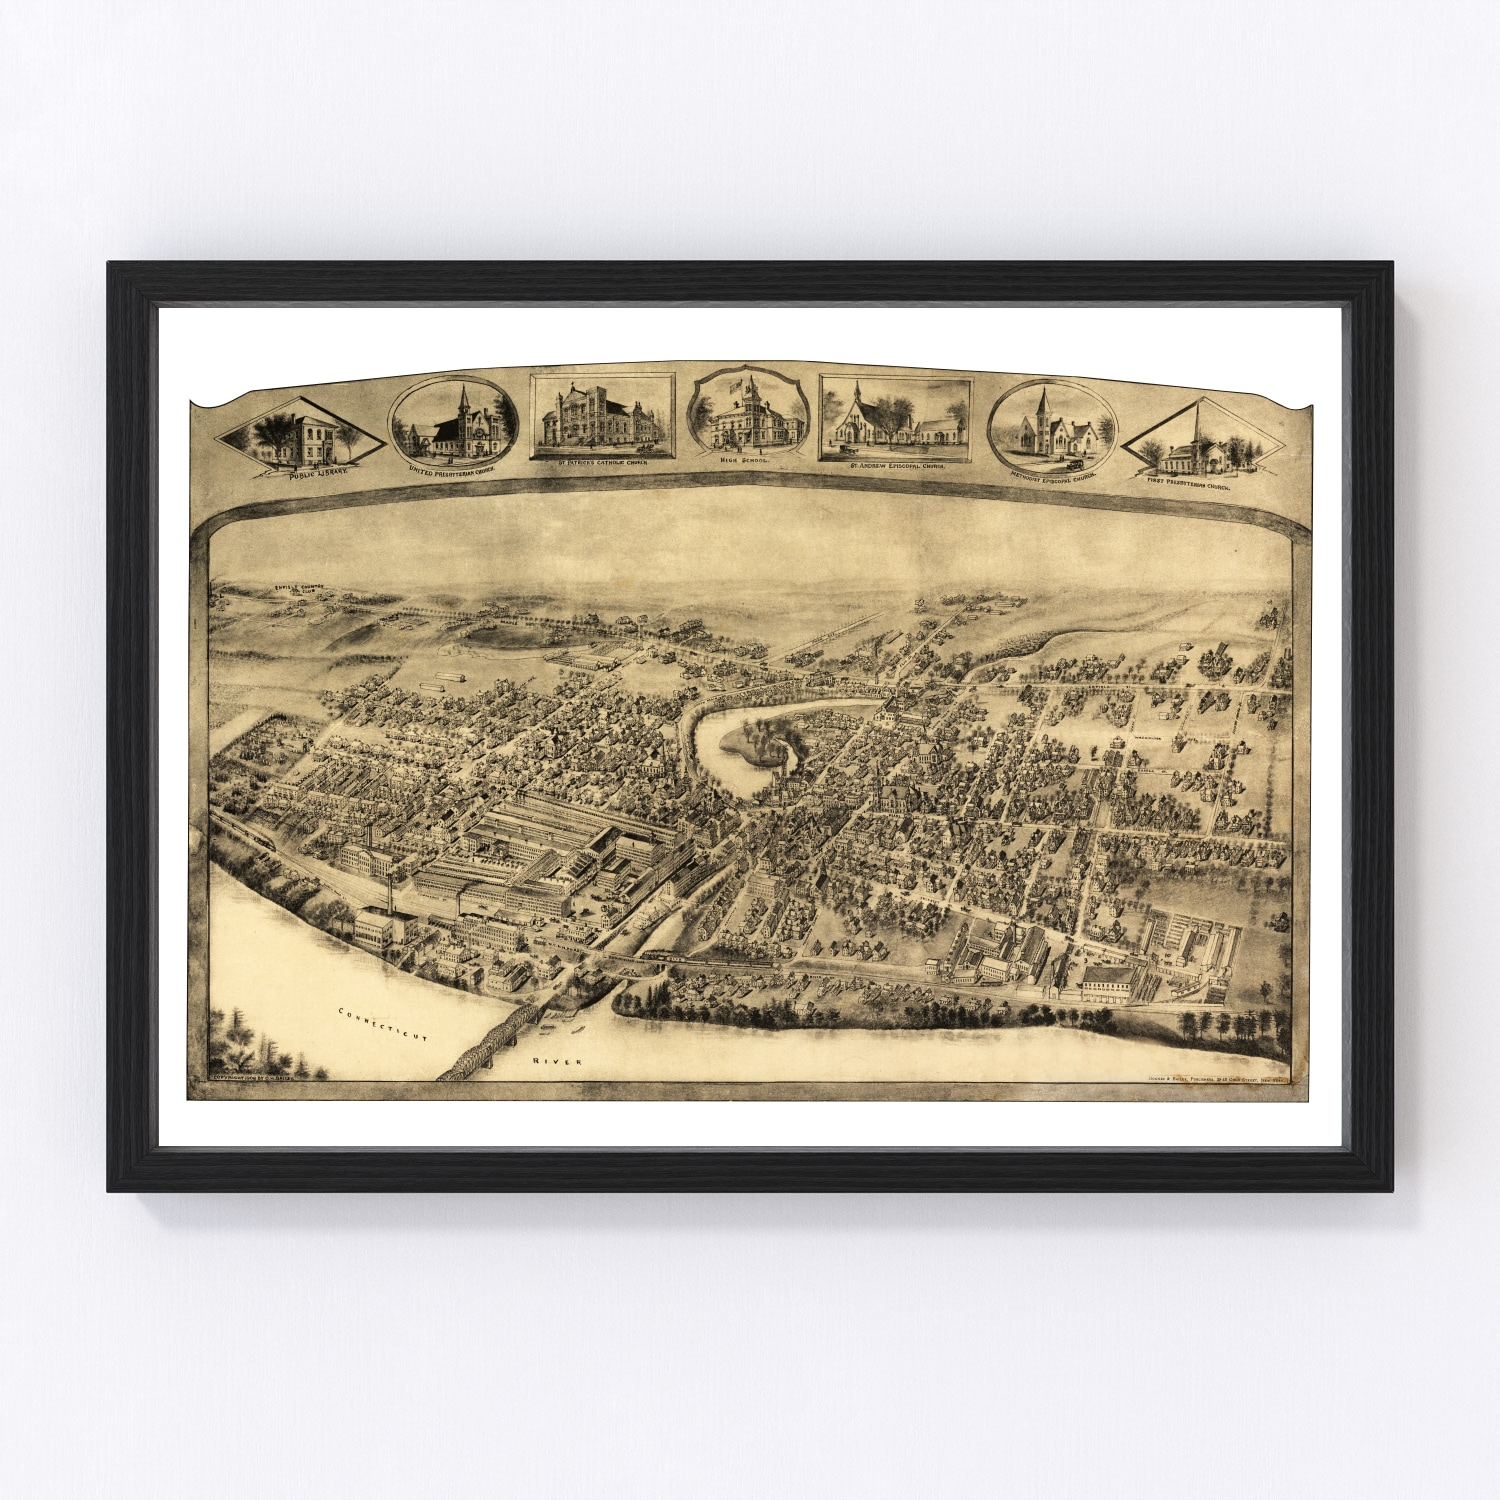 Vintage Map of Thompsonville – Enfield, Connecticut 1908